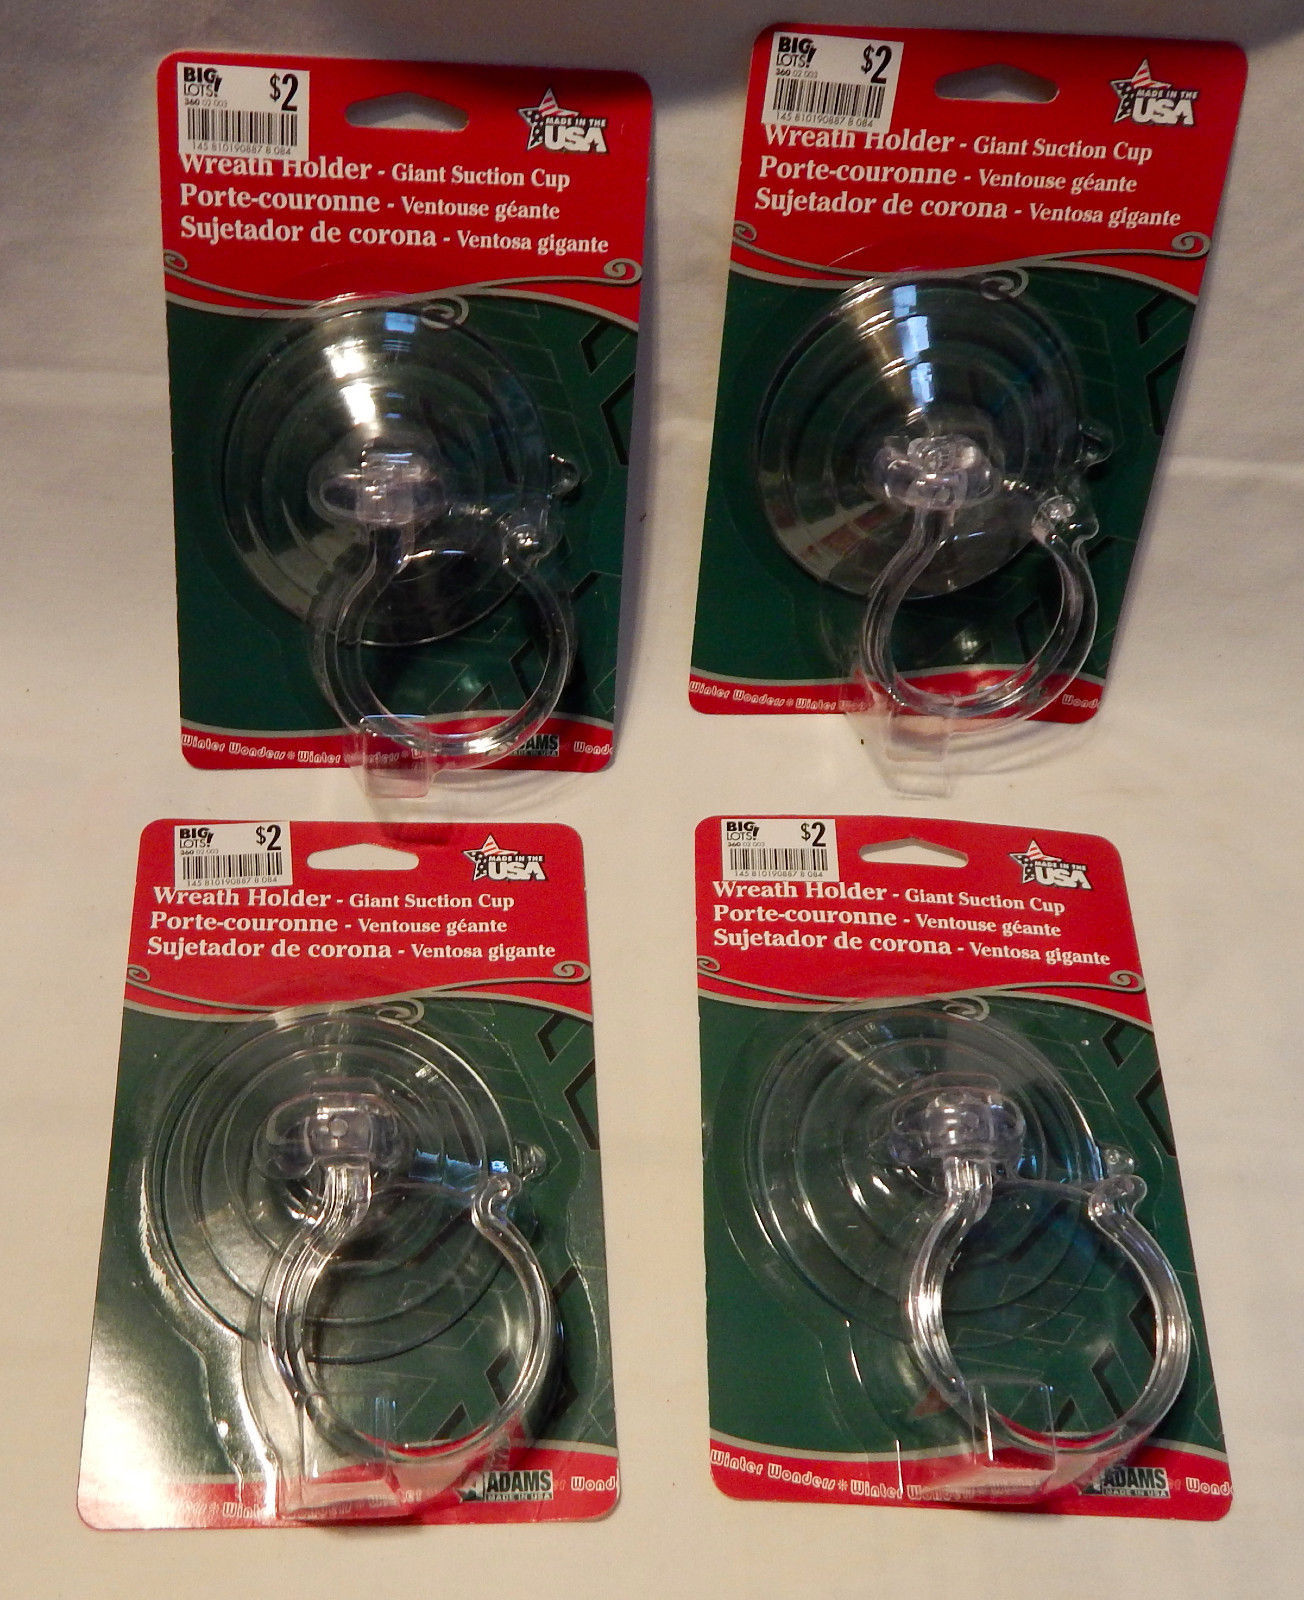 Giant Suction Cup Wreath Holder Or Anything To Hang On Windows Or Doors 4ea 34T